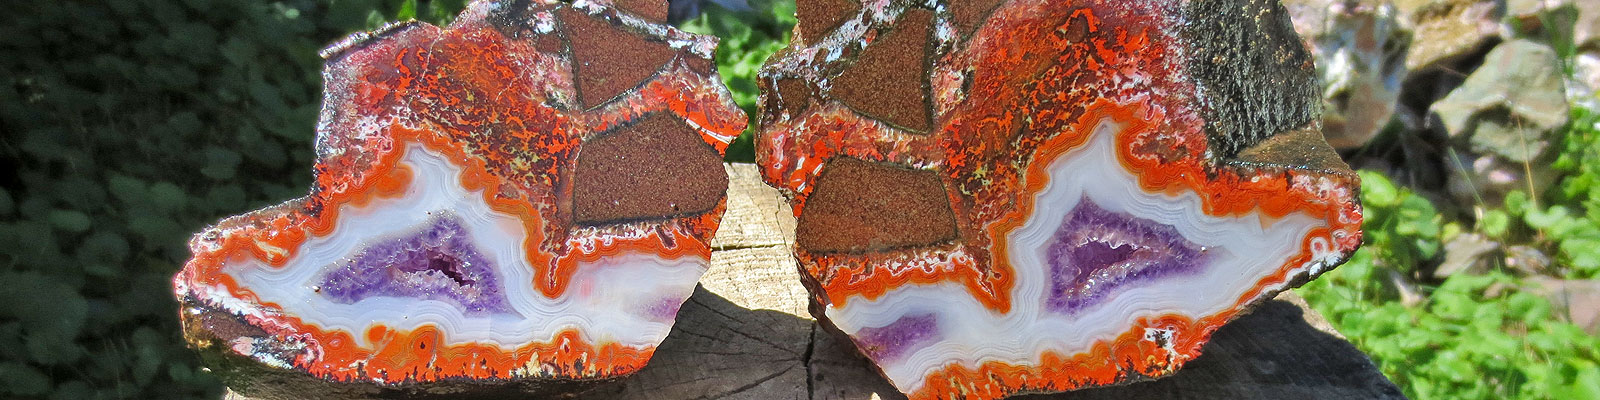 Orange Jasper with Banded Amethyst, Bay of Fundy, Nova Scotia